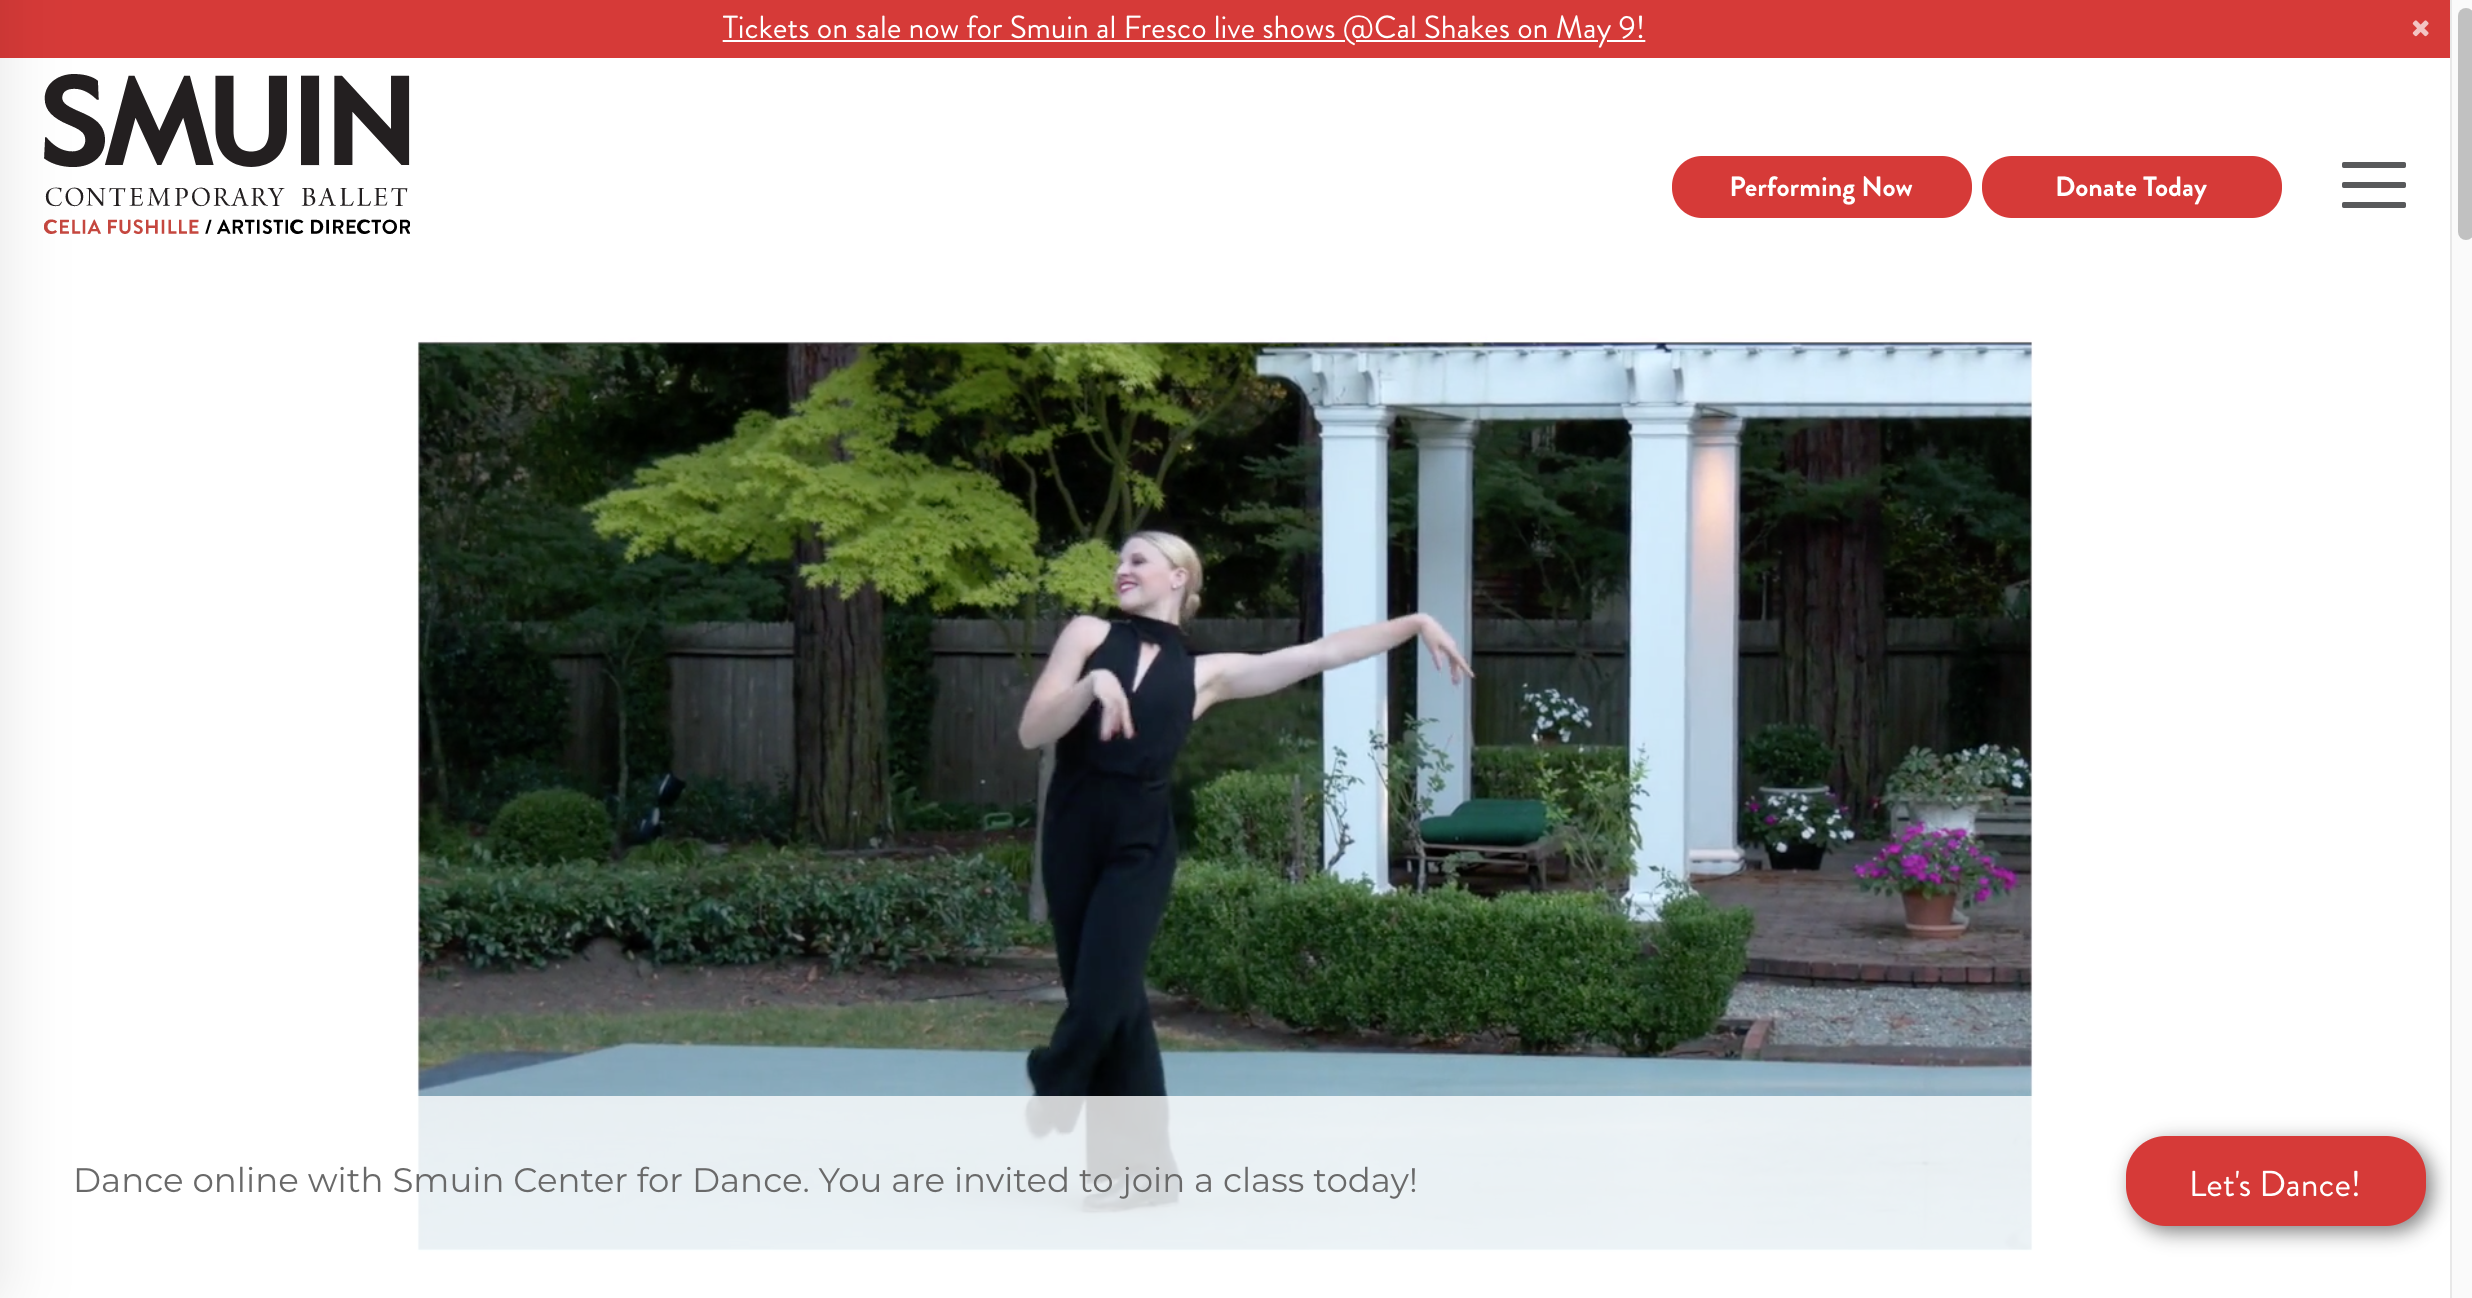 Smuin Artist Tessa Barbour strikes a tap pose outdoors with white columns in background for website home page